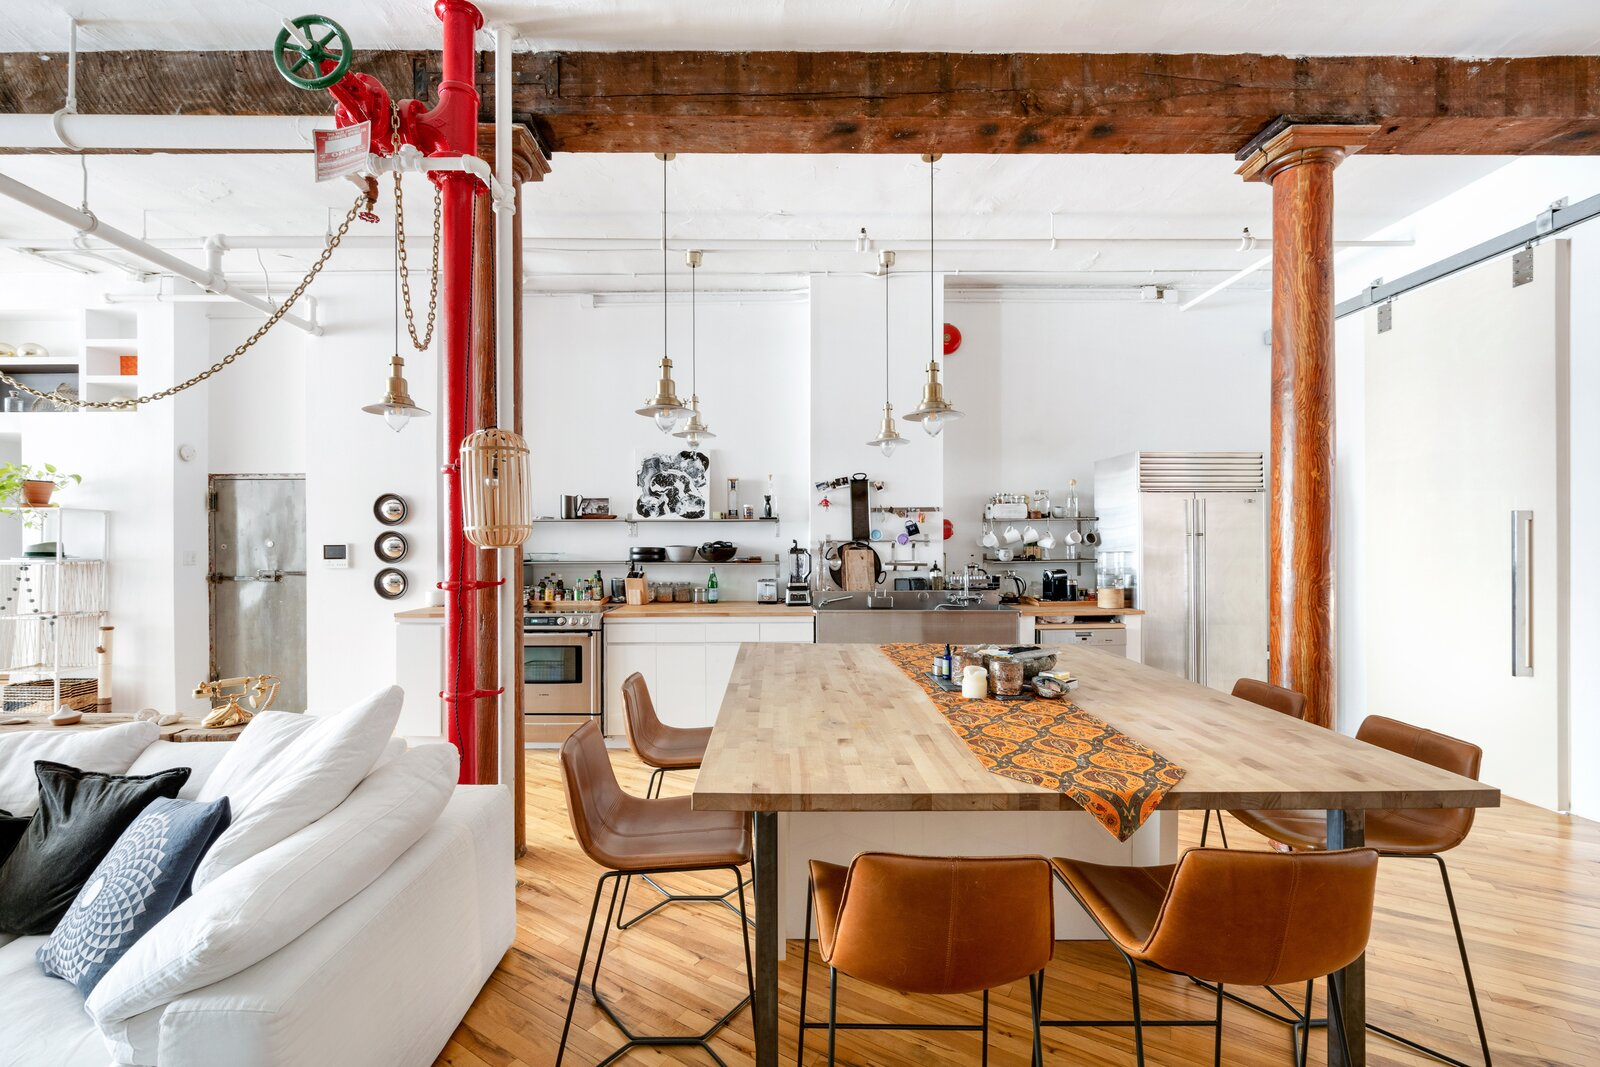 Dining Room, Medium Hardwood Floor, Table, Pendant Lighting, and Chair  Dwell's Favorite Photos from A Quintessential Soho Loft in New York City Asks $4.3M